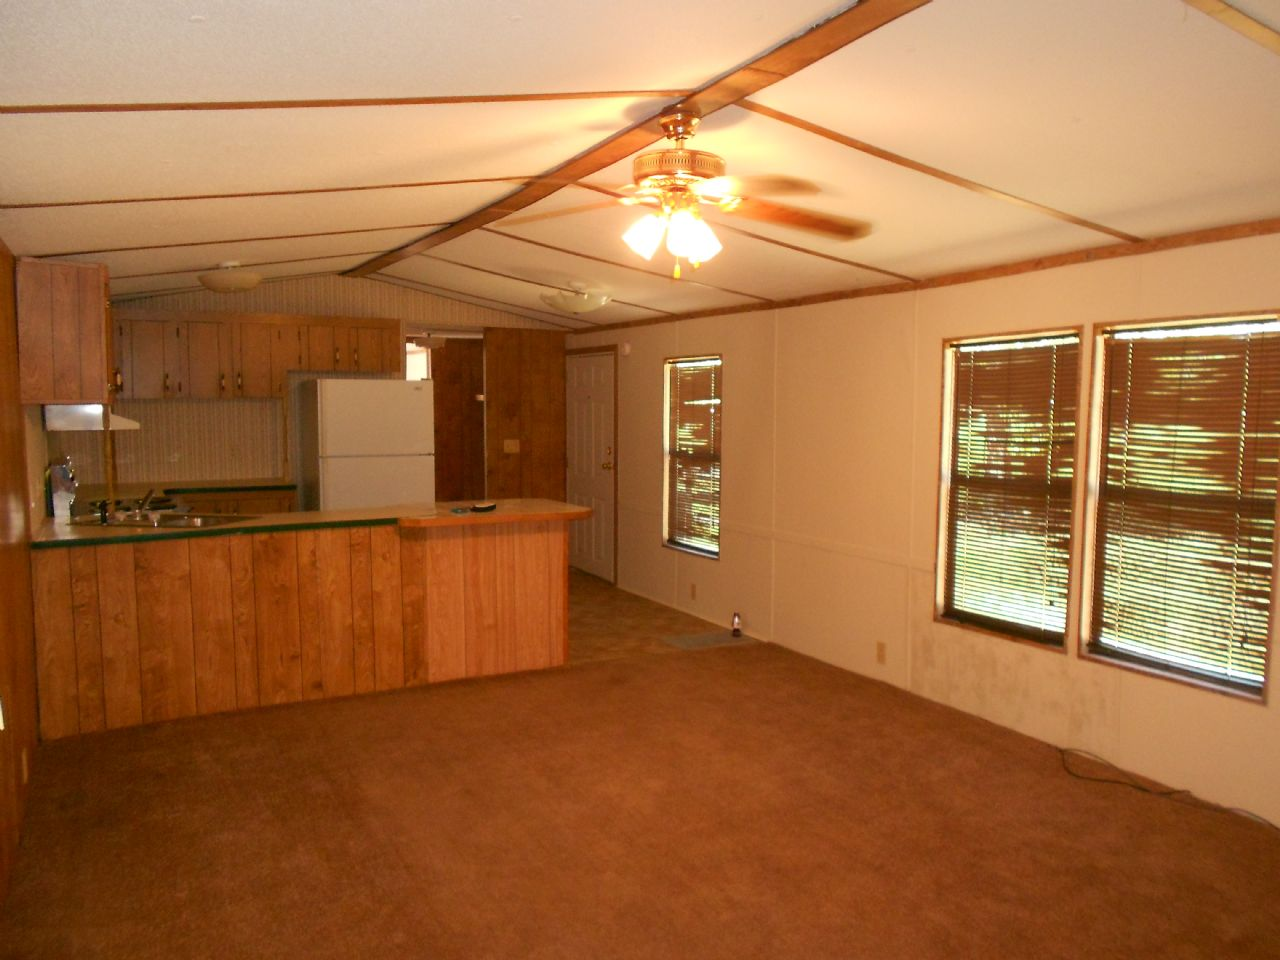 2 bedroom 2 bath mobile home 2975 old union adel ga for Two bedroom two bath